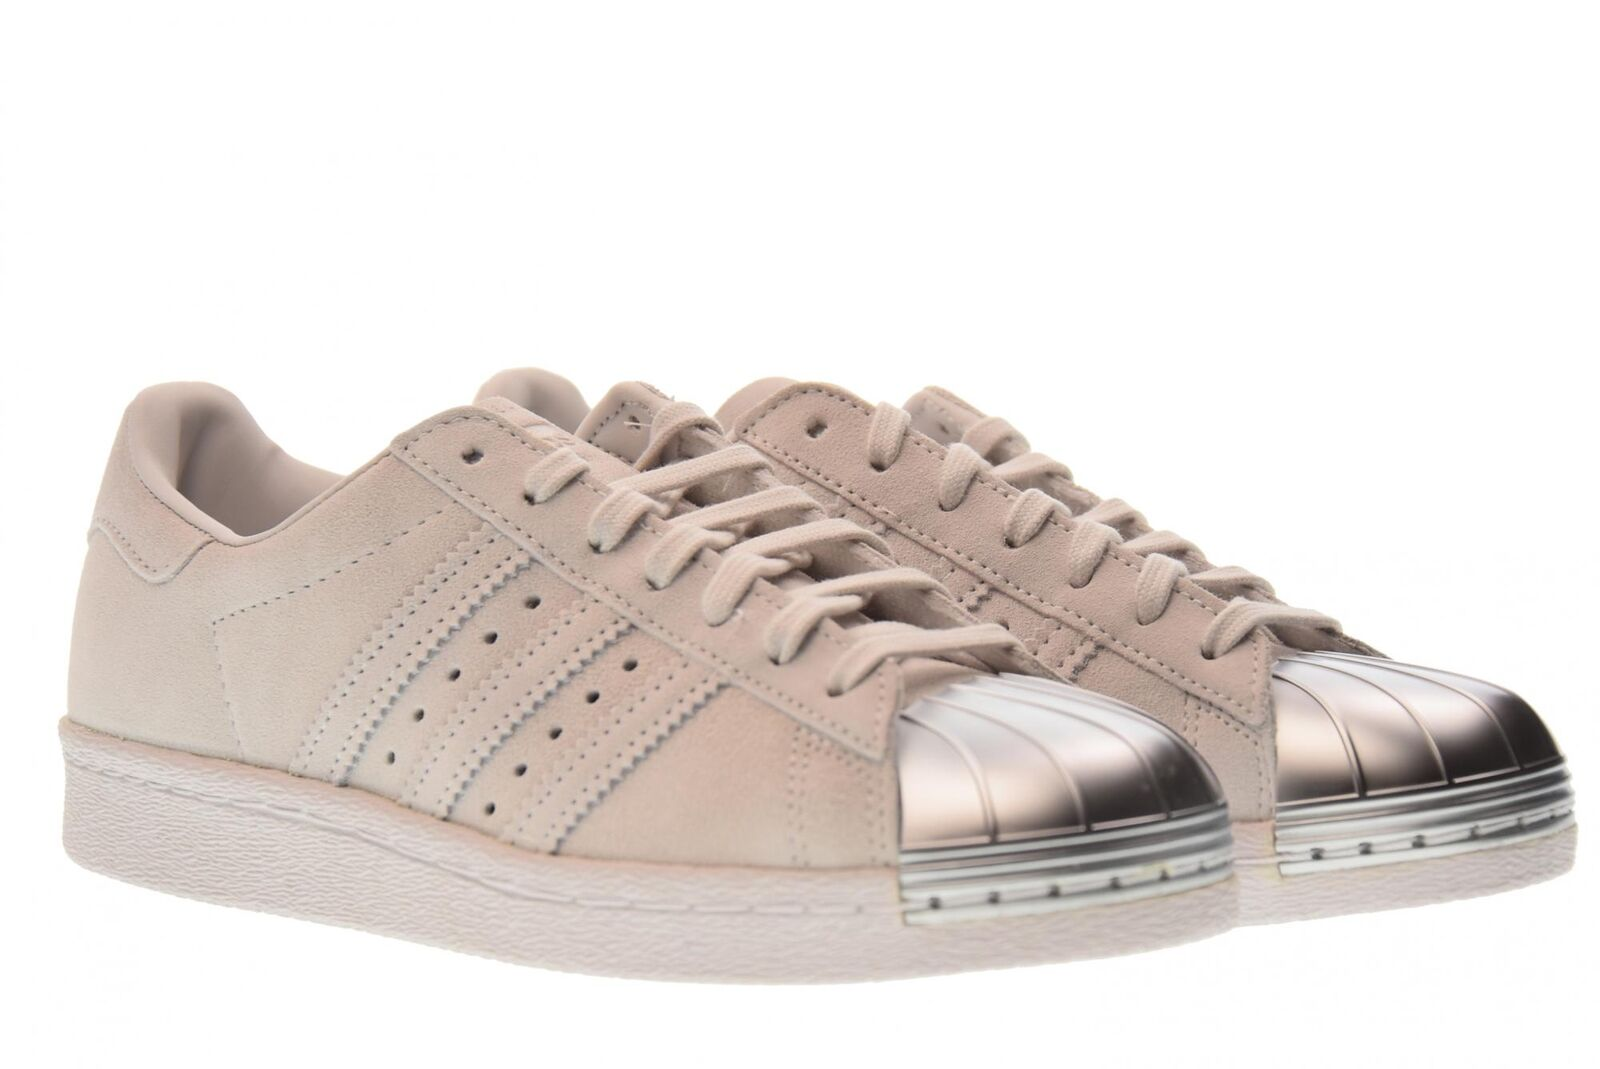 Basket 80s Metal Basse S Superstar Femme Chaussures Adidas Cp9945 OxaqEf6wc